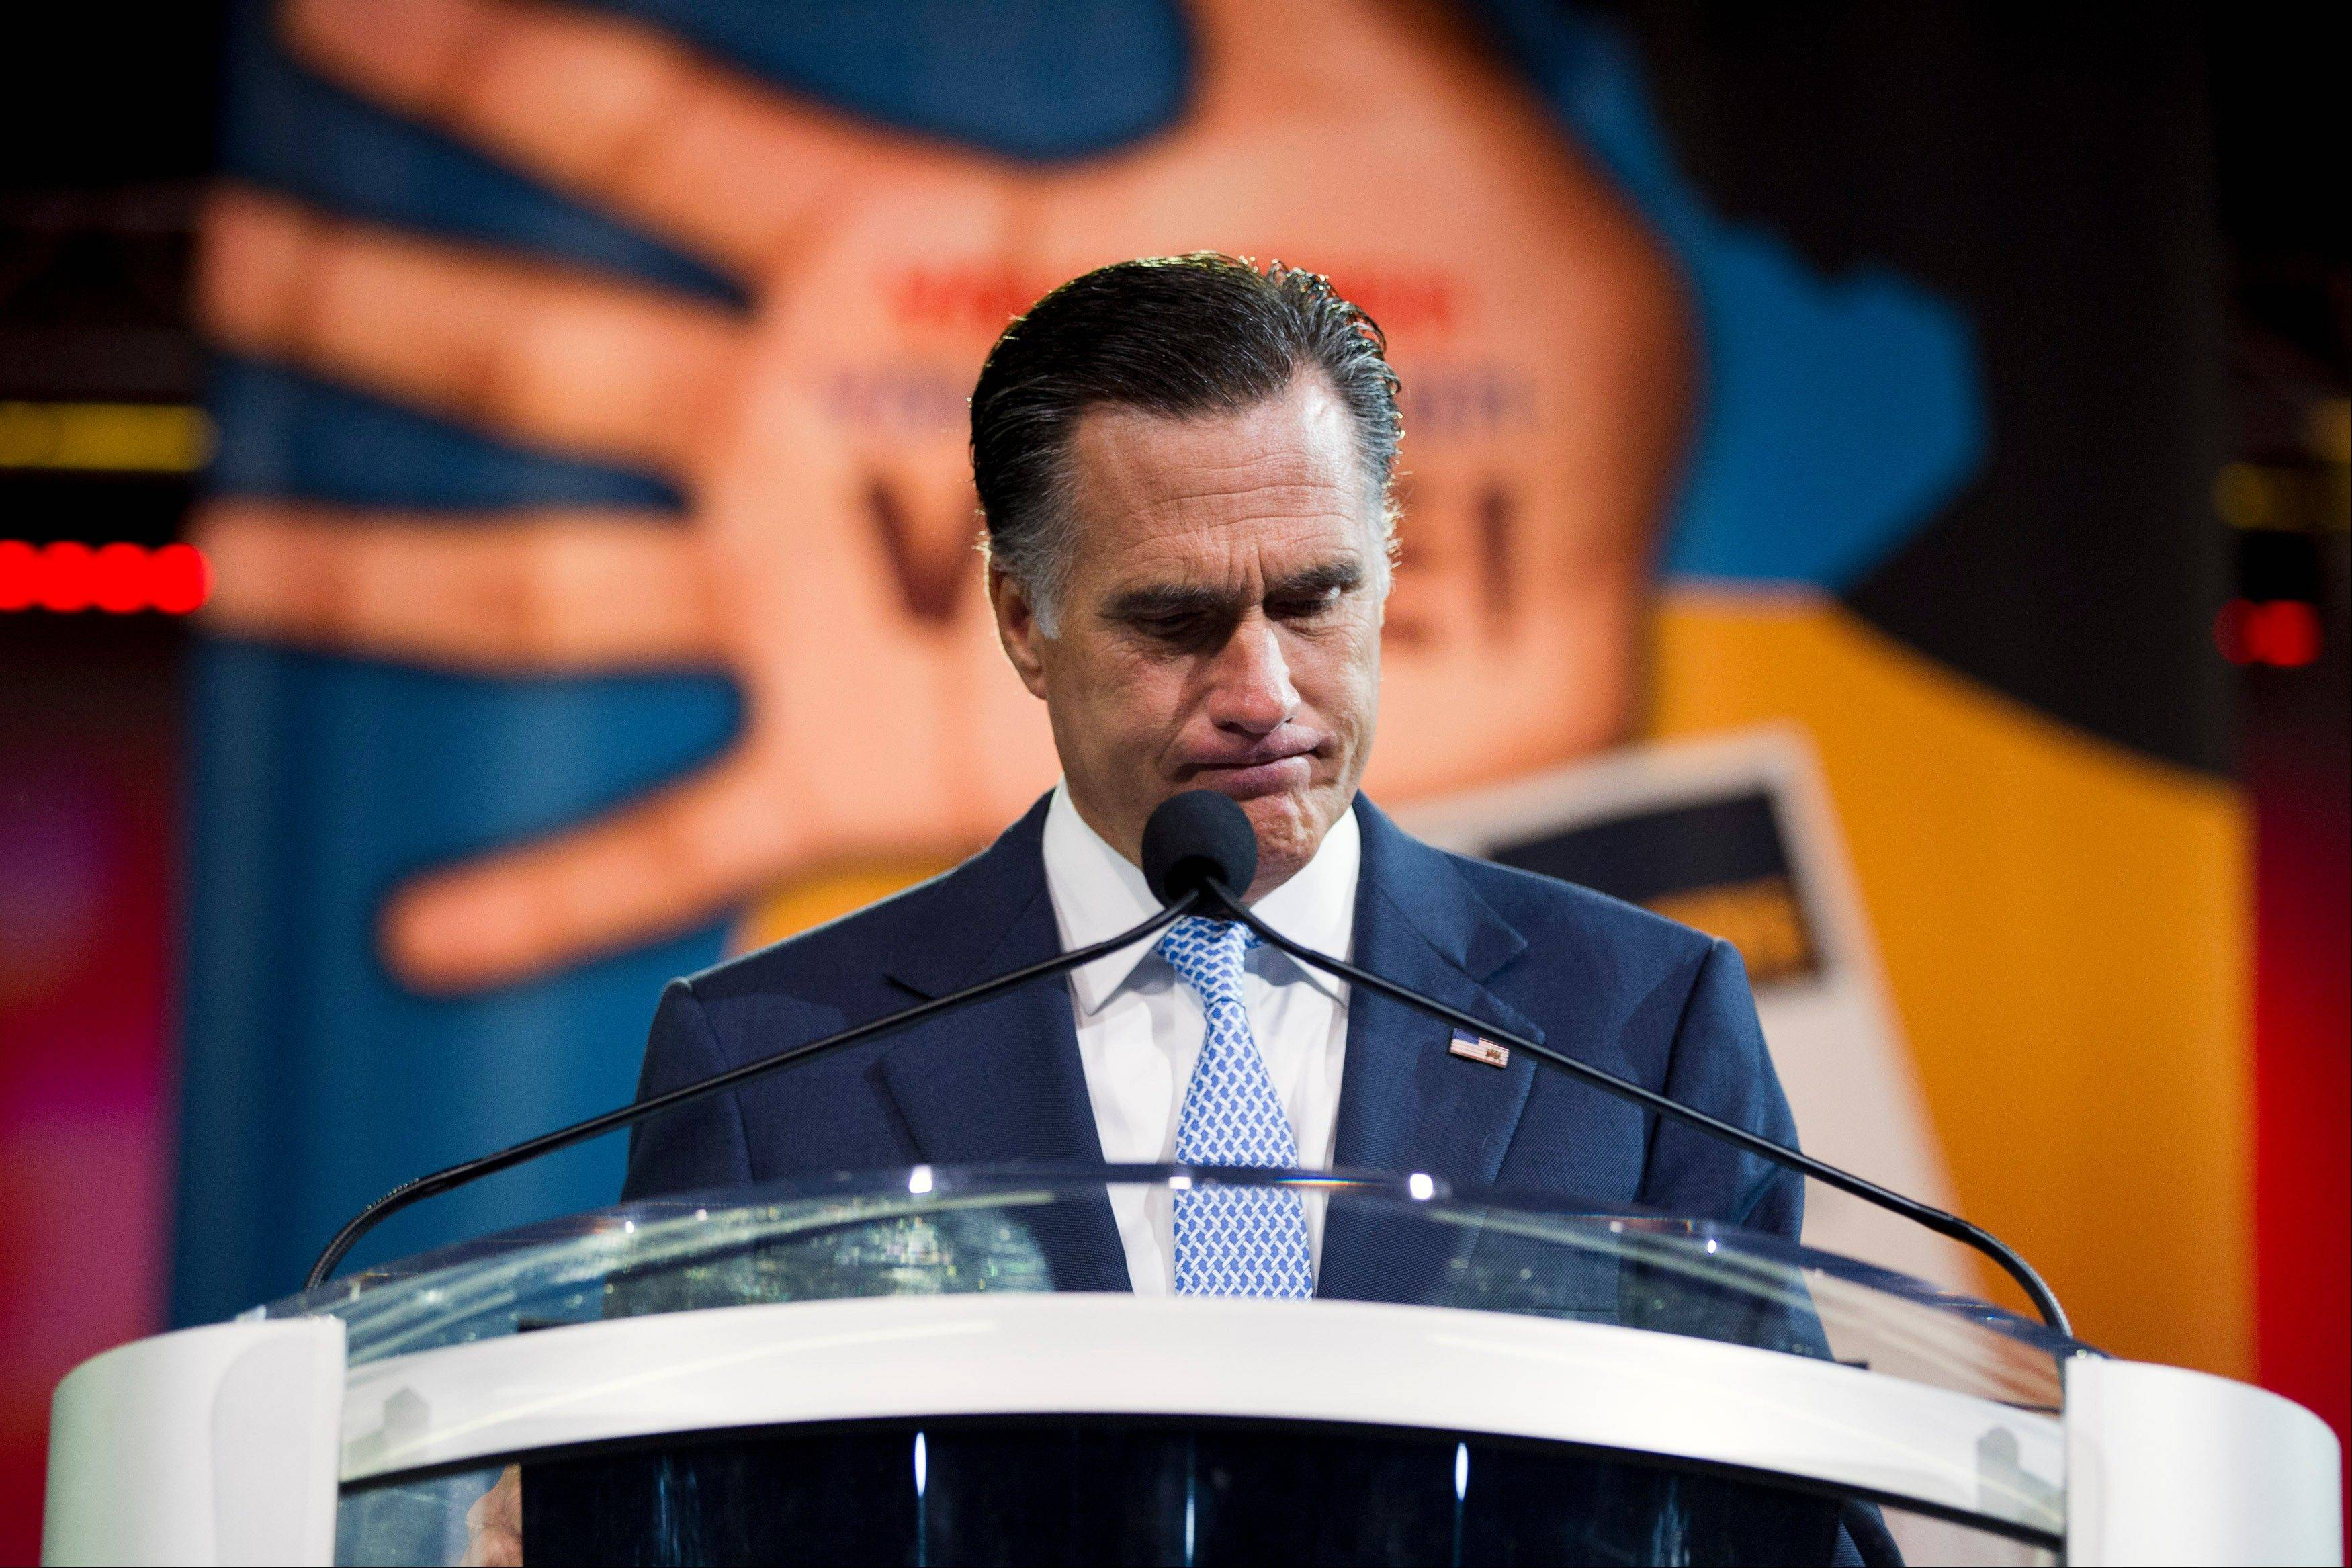 Republican presidential candidate, former Massachusetts Gov. Mitt Romney pauses during a speech before the NAACP annual convention, Wednesday, July 11, 2012, in Houston, Texas.